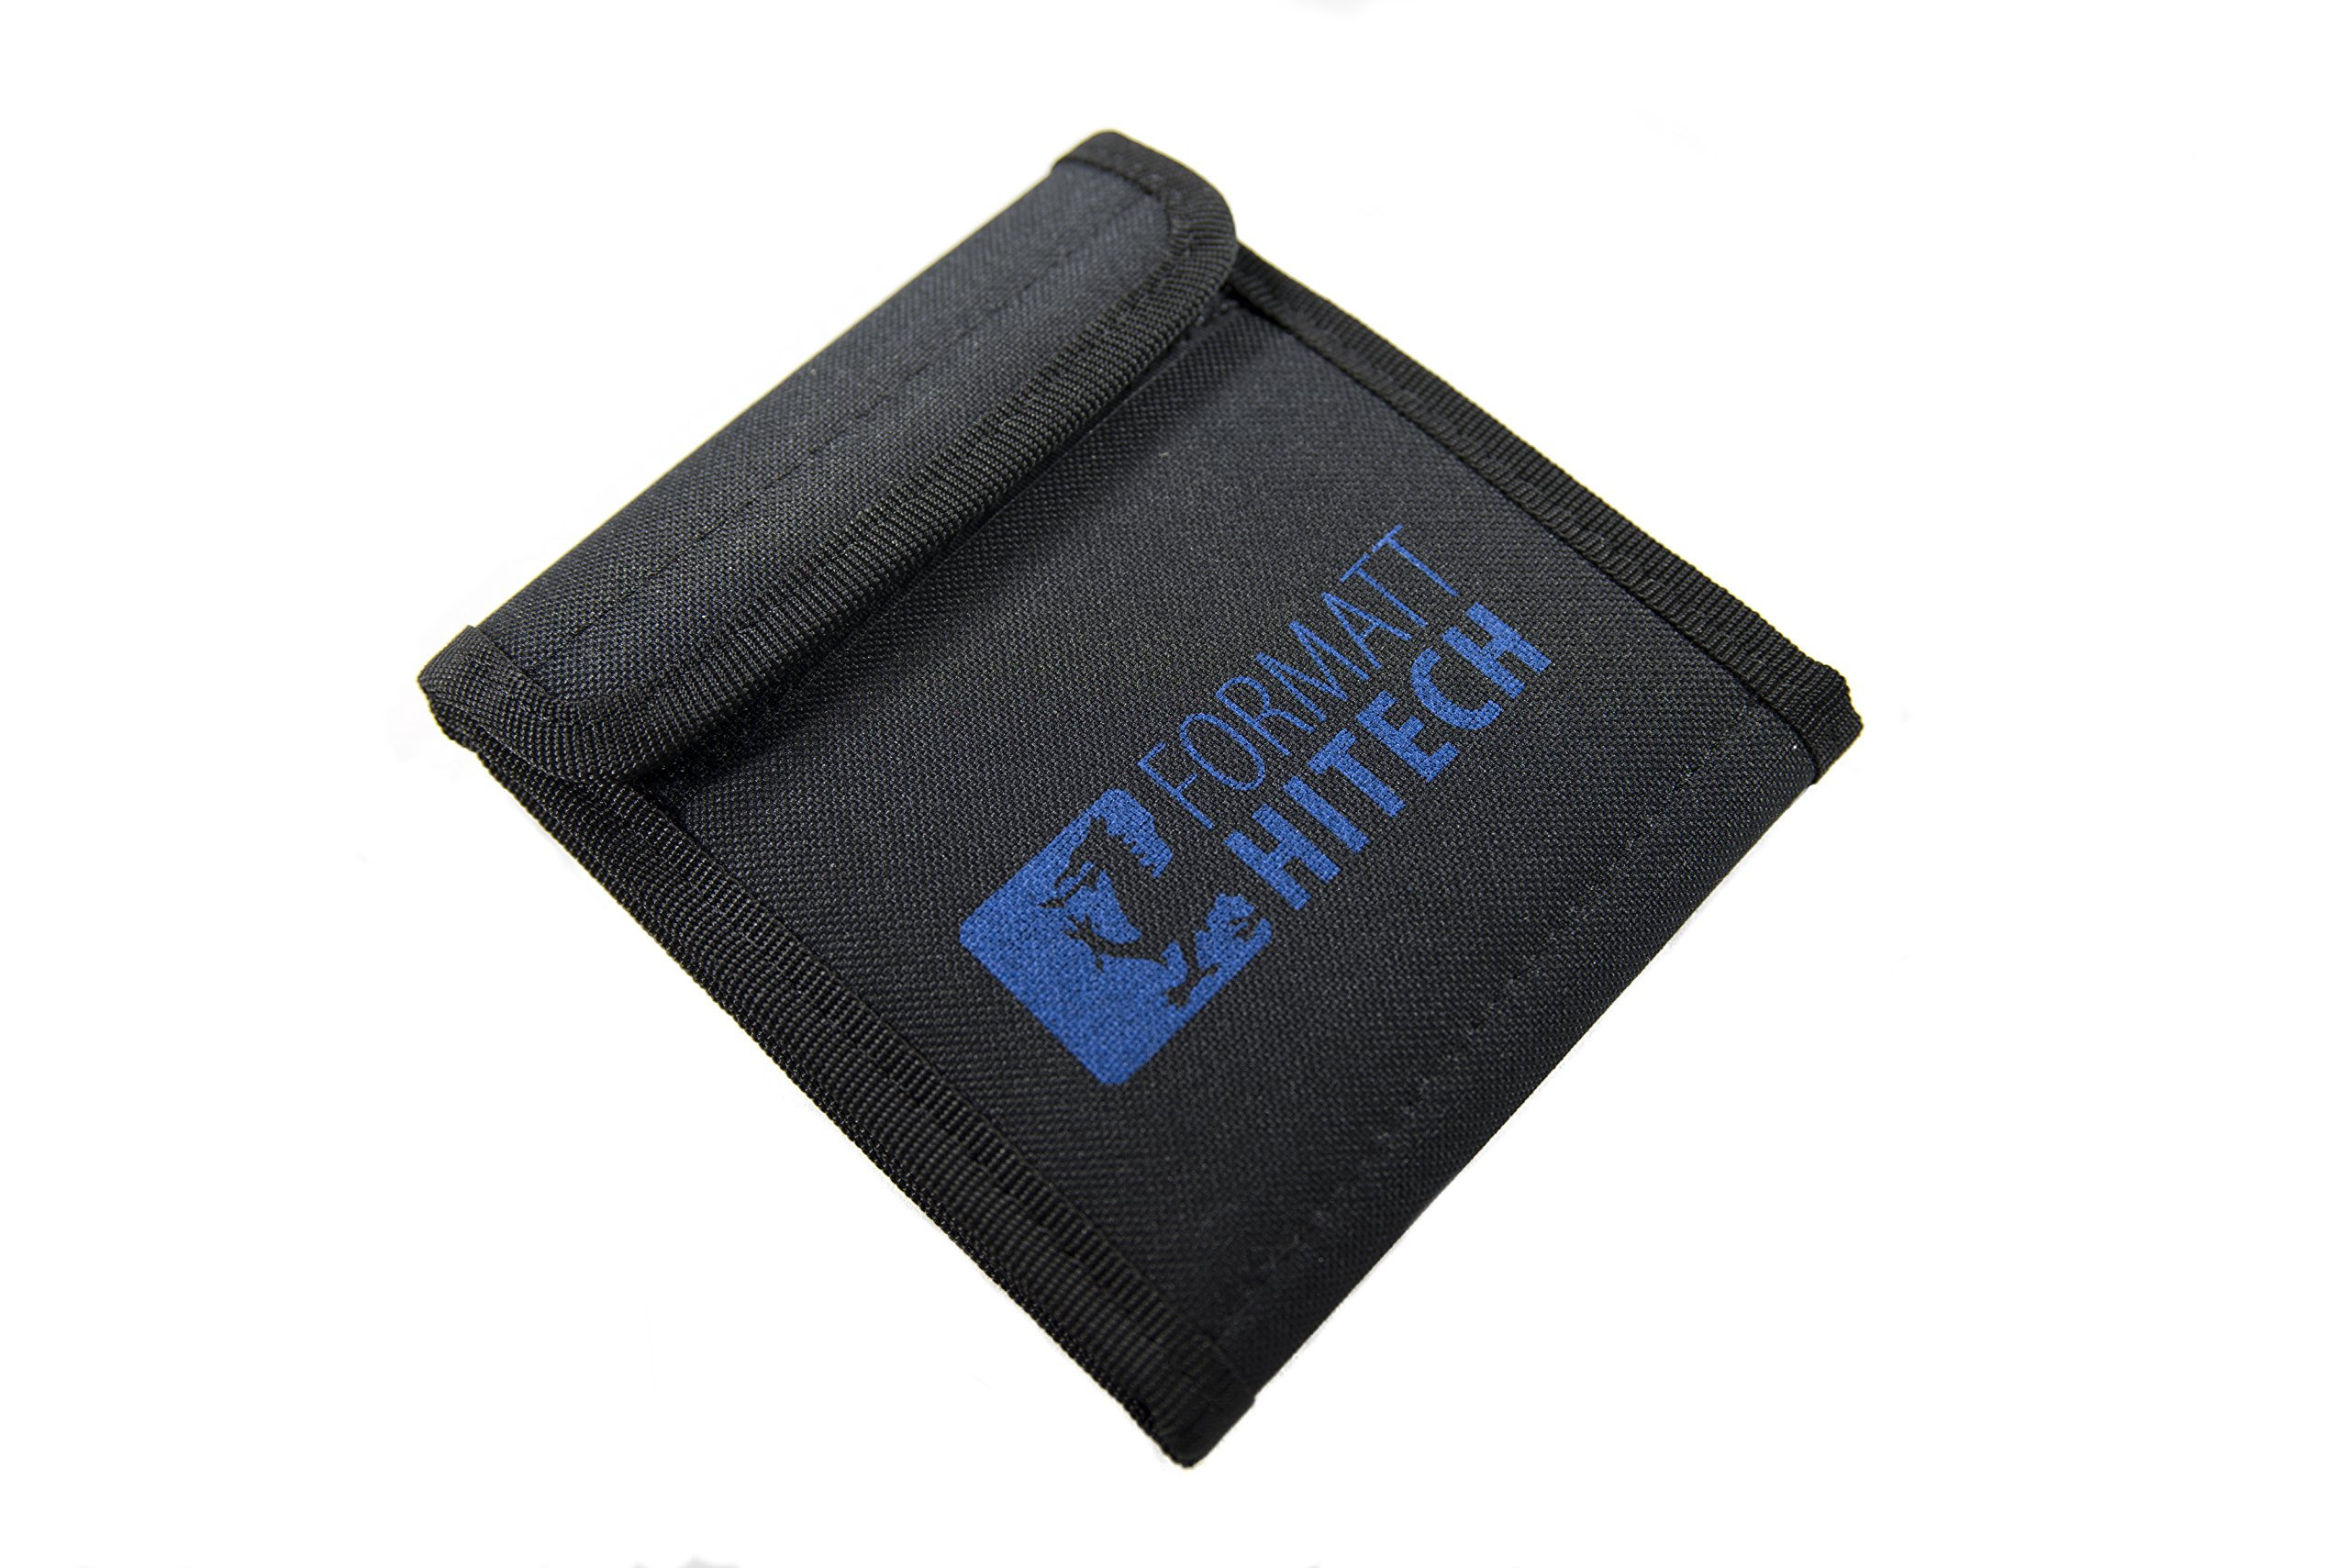 Formatt Hitech 85mm 6 Filter pouch compatible with all 85mm filters Formatt Hitech Cokin P system